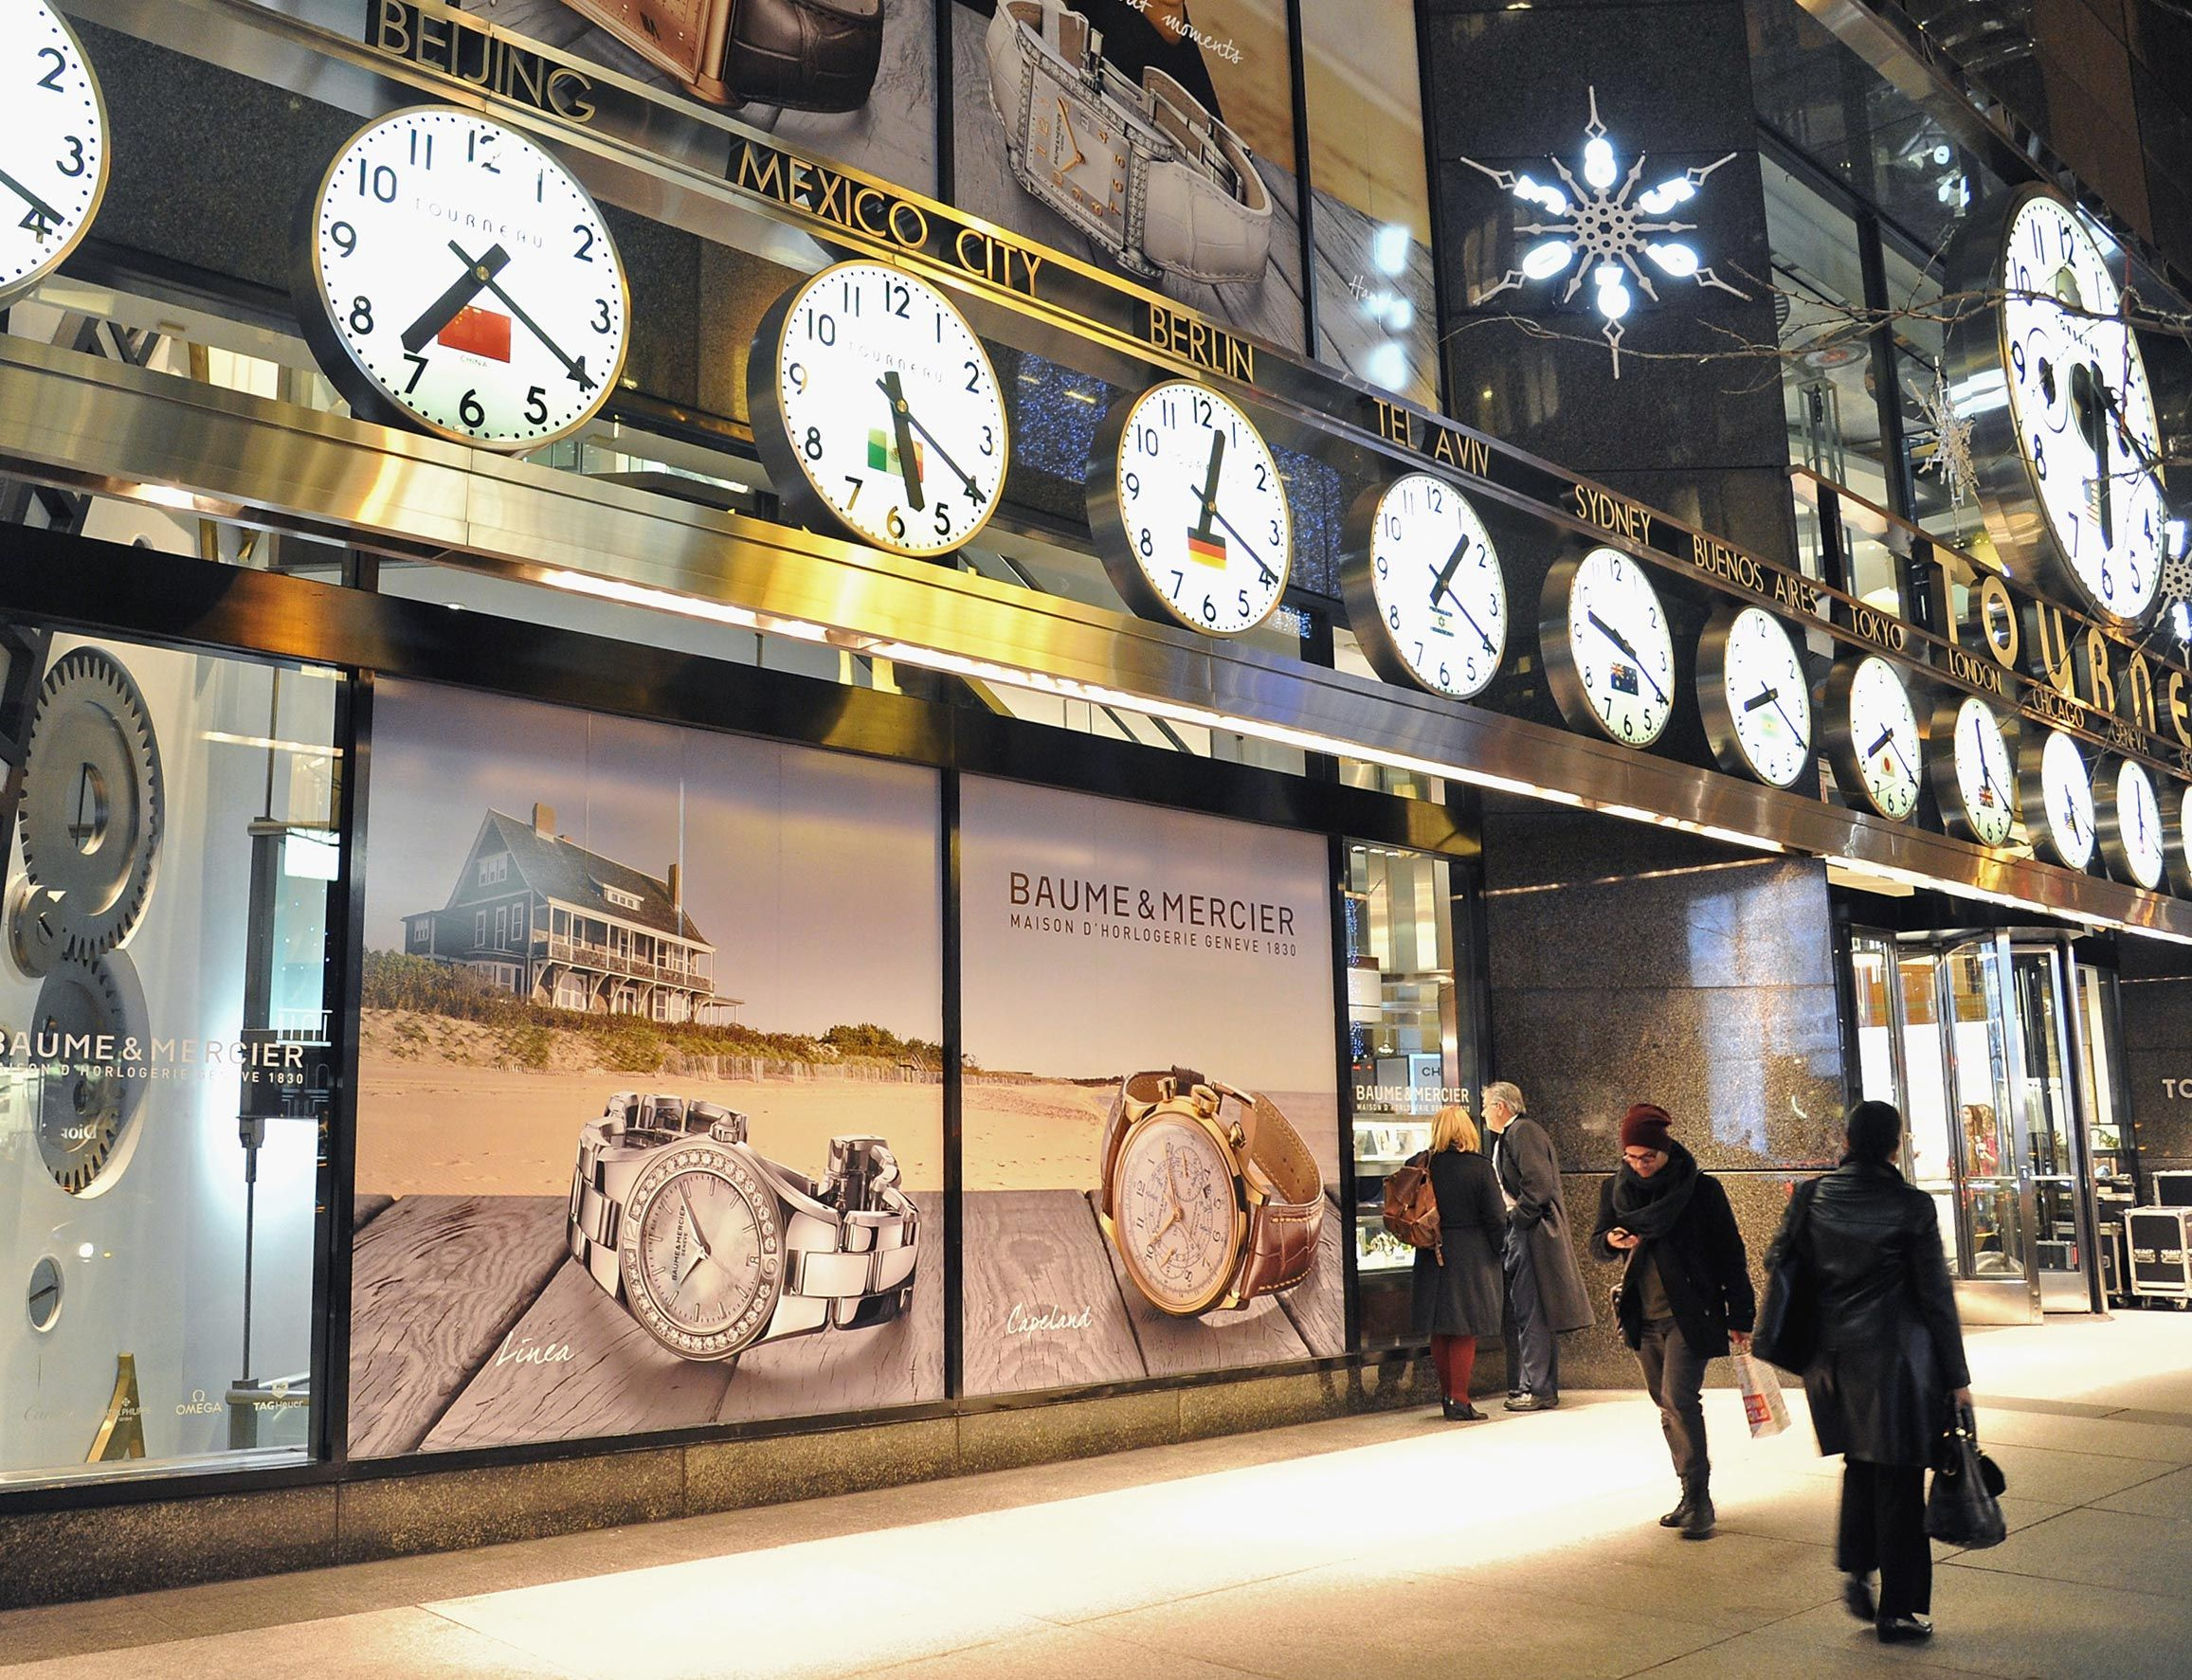 Last December, Baume & Mercier hosted a private event with